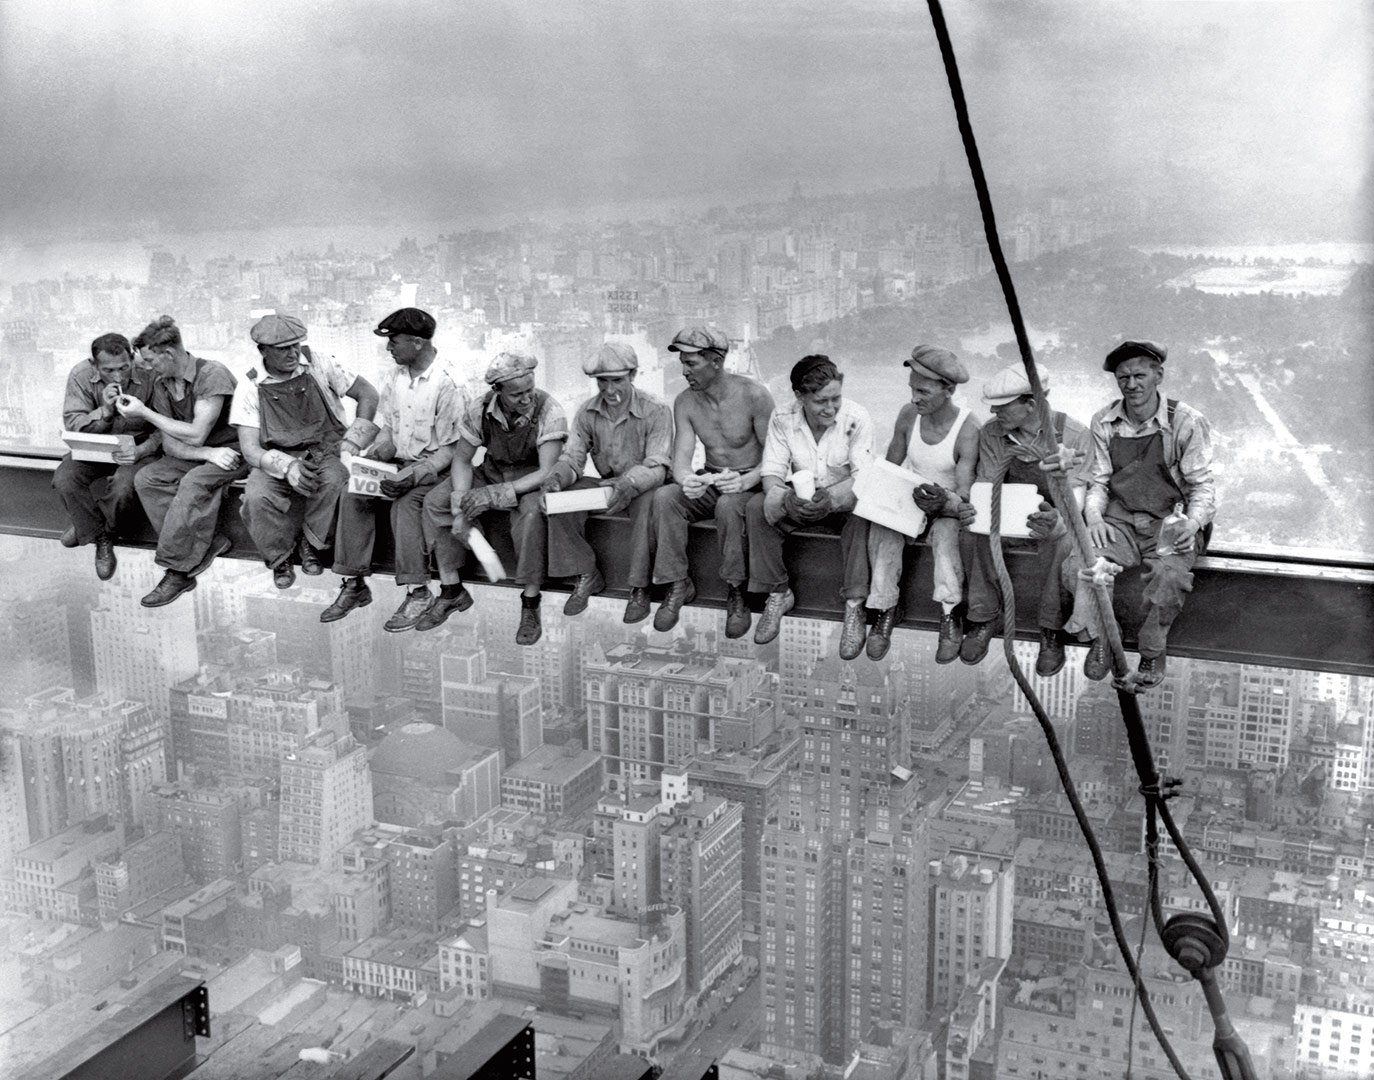 Lunch Atop a Skyscraper, New York City, USA 1932 © Charles C. Ebbets, Thomas Kelley or William Leftwich